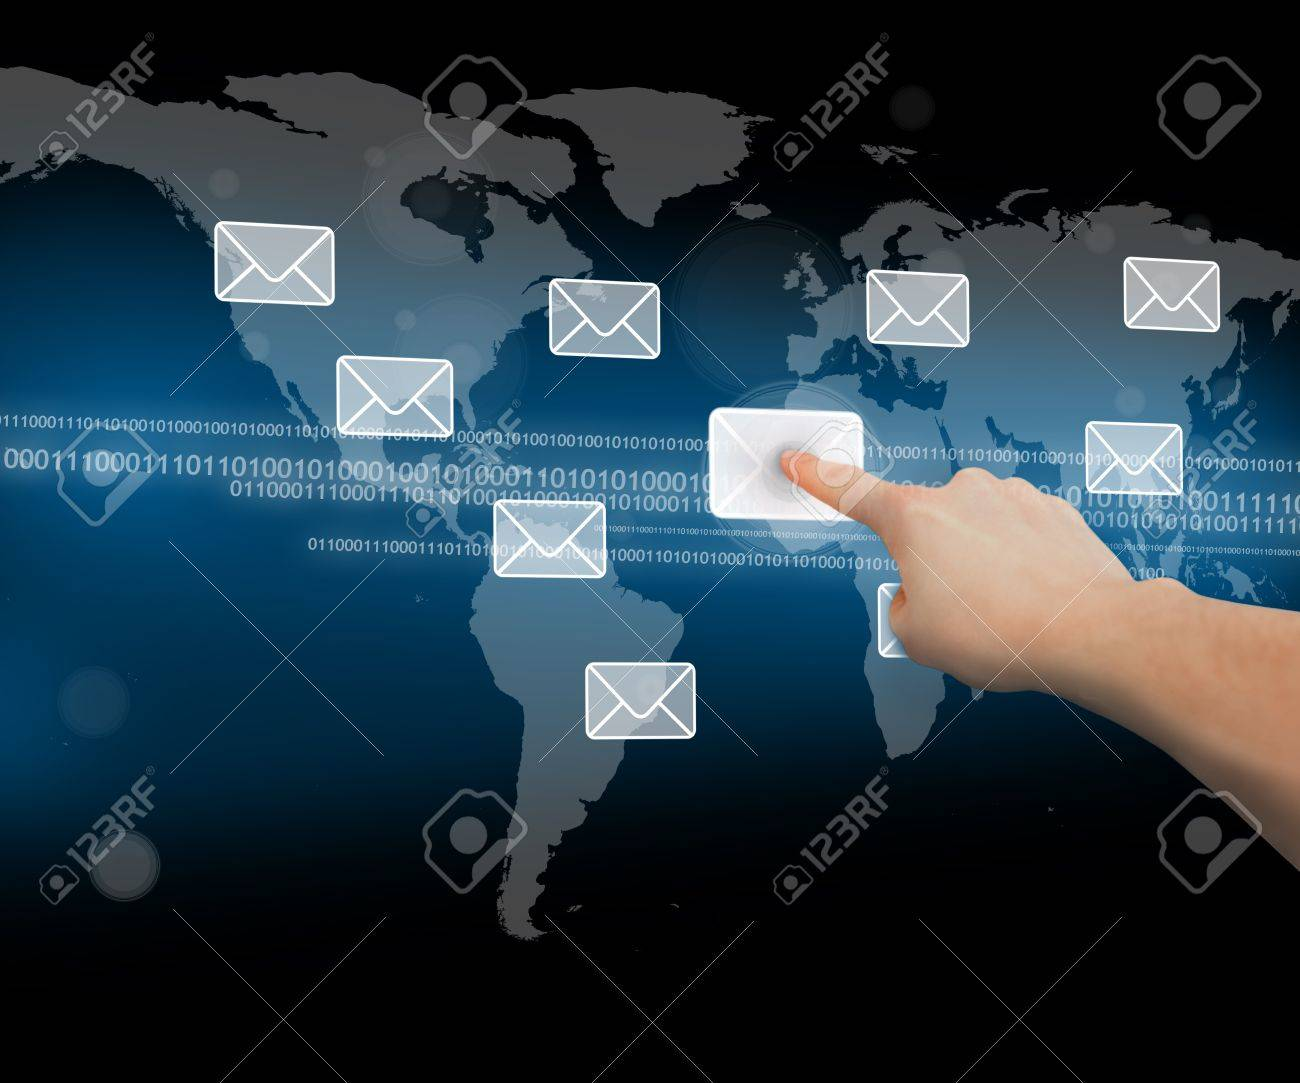 Finger pushing mail symbol on touchscreen world map interface finger pushing mail symbol on touchscreen world map interface on black background stock photo 18683987 gumiabroncs Gallery